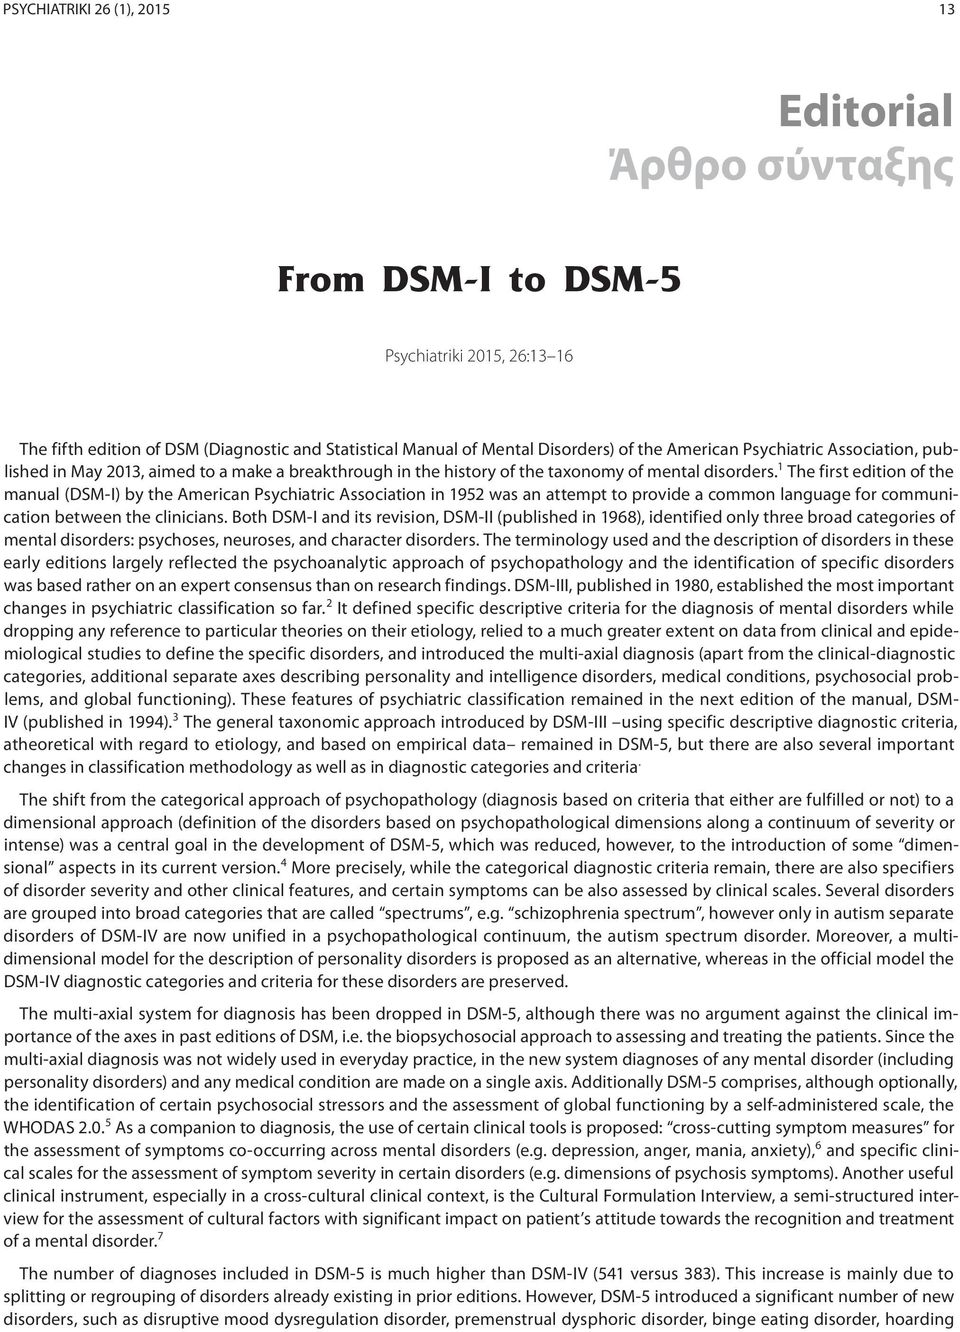 1 The first edition of the manual (DSM-I) by the American Psychiatric Association in 1952 was an attempt to provide a common language for communication between the clinicians.